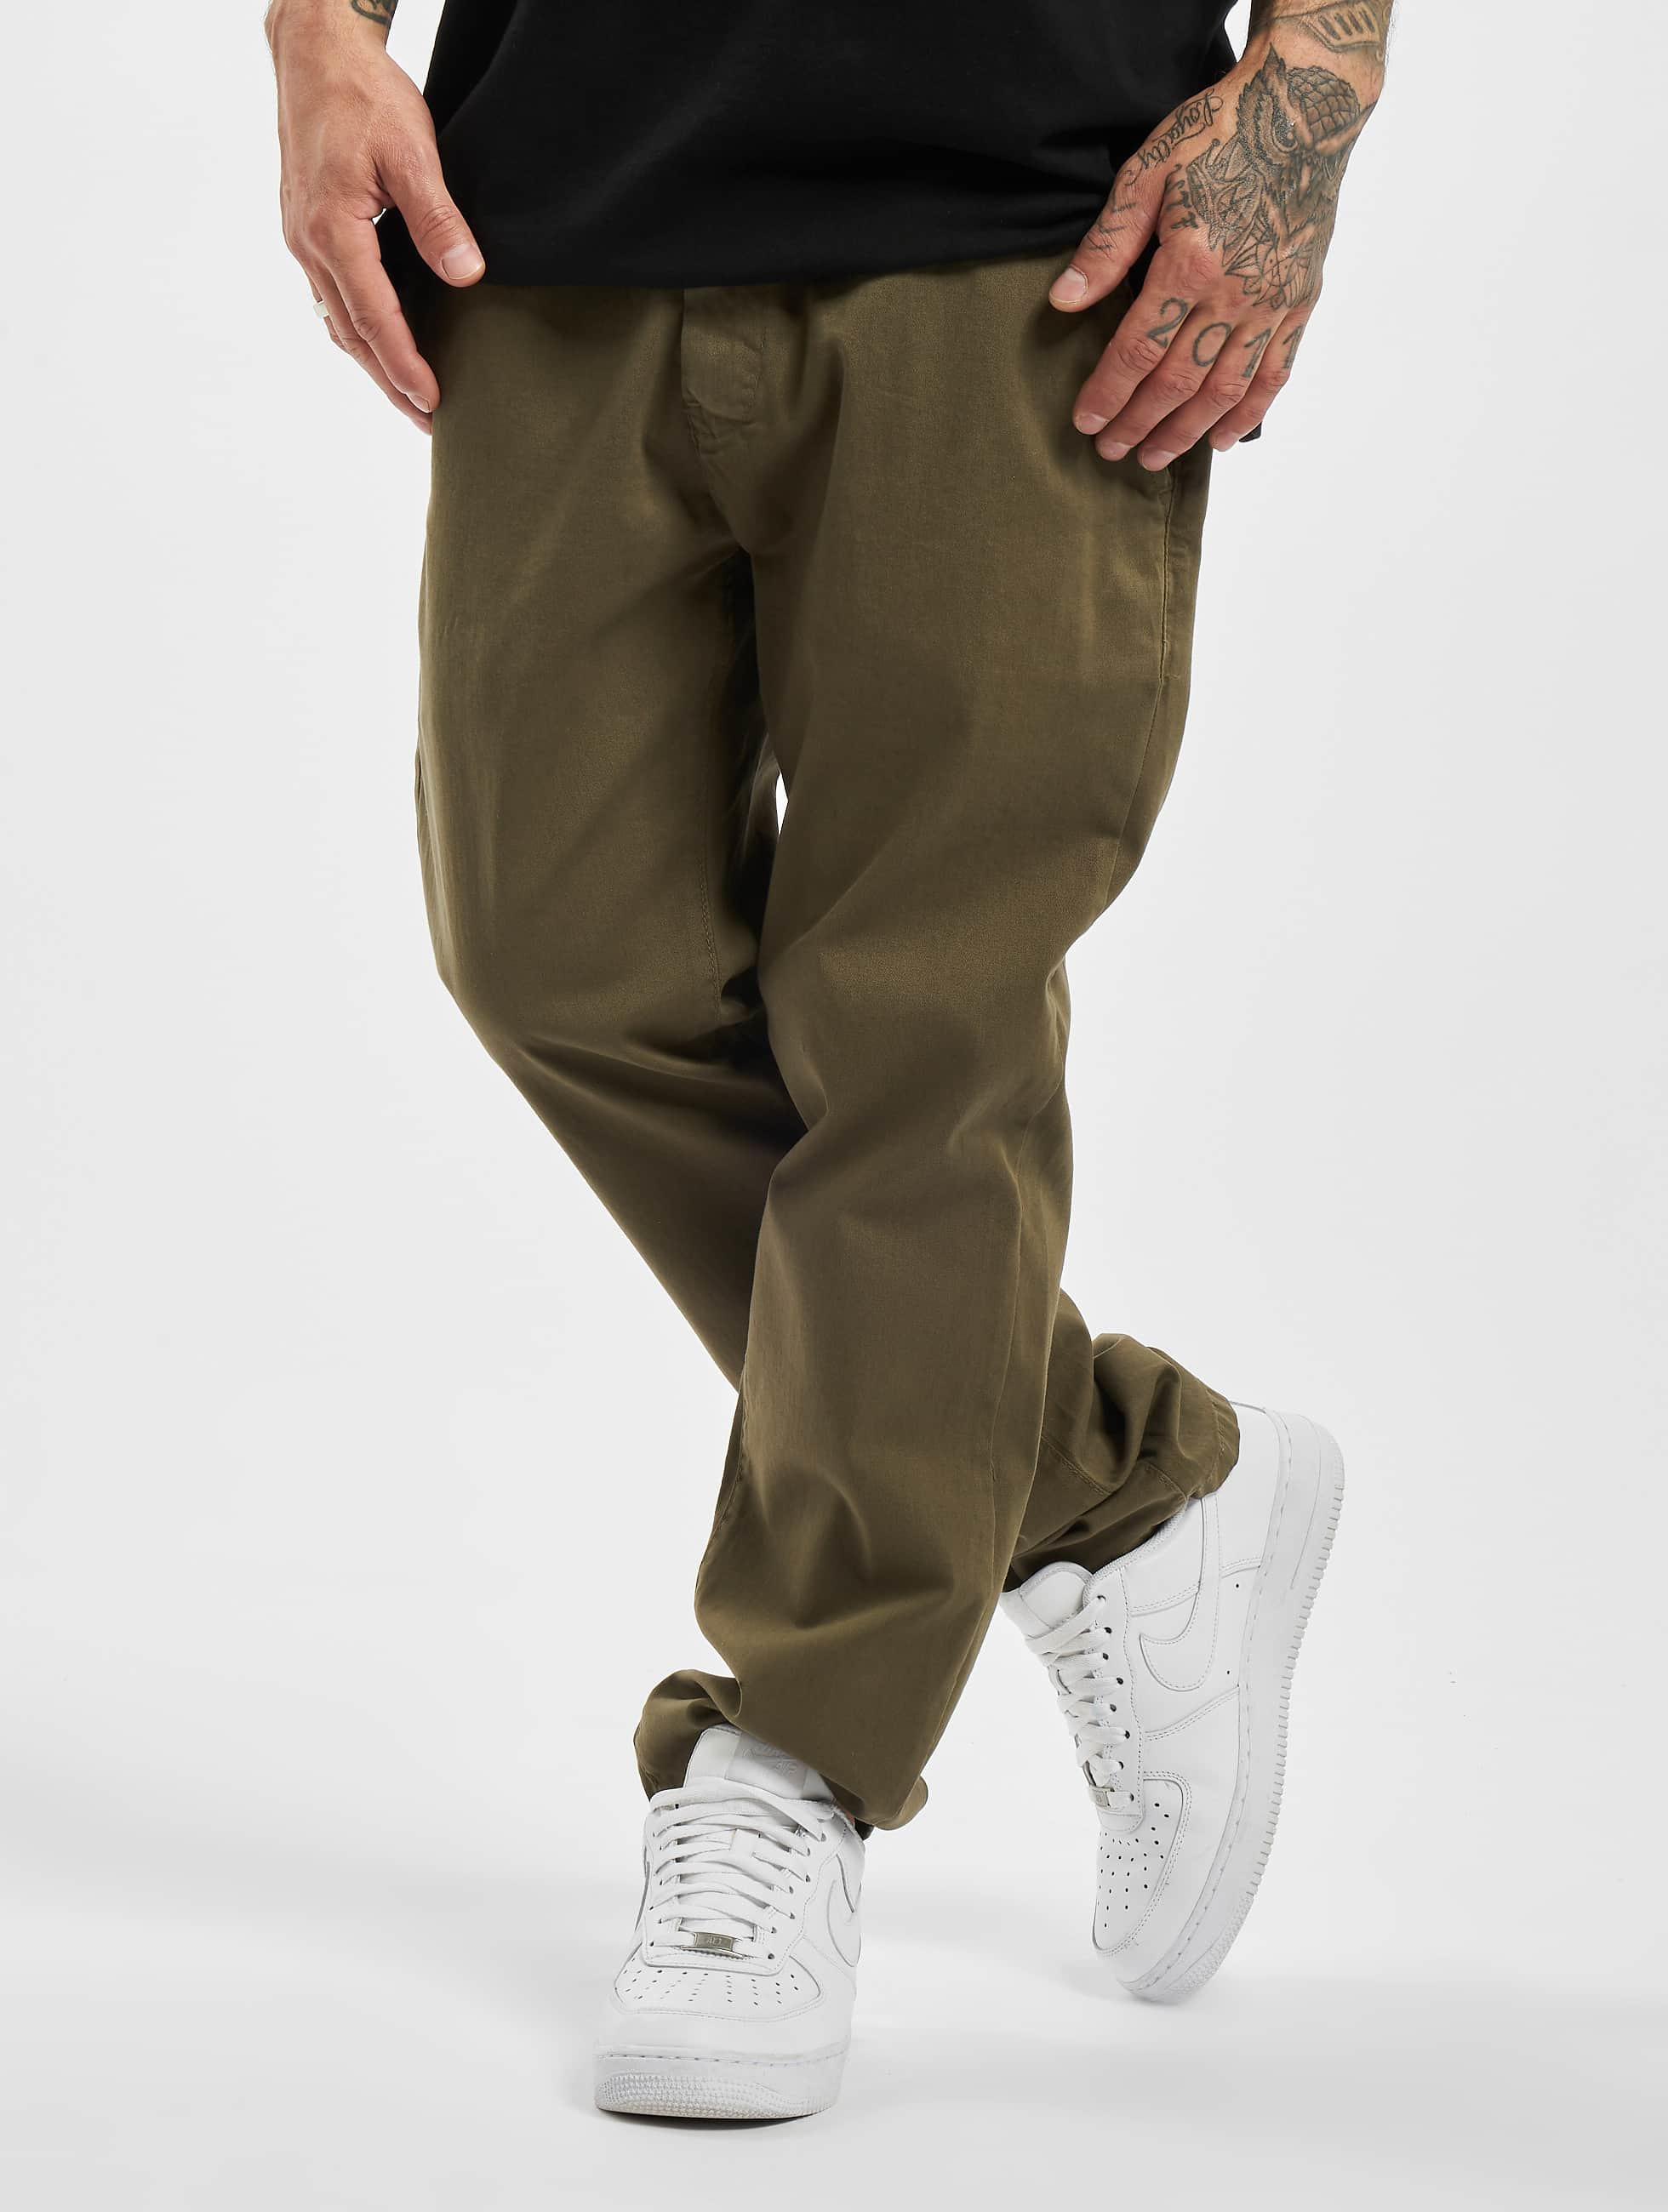 DEF / Chino Karl in olive XL  (L 34)